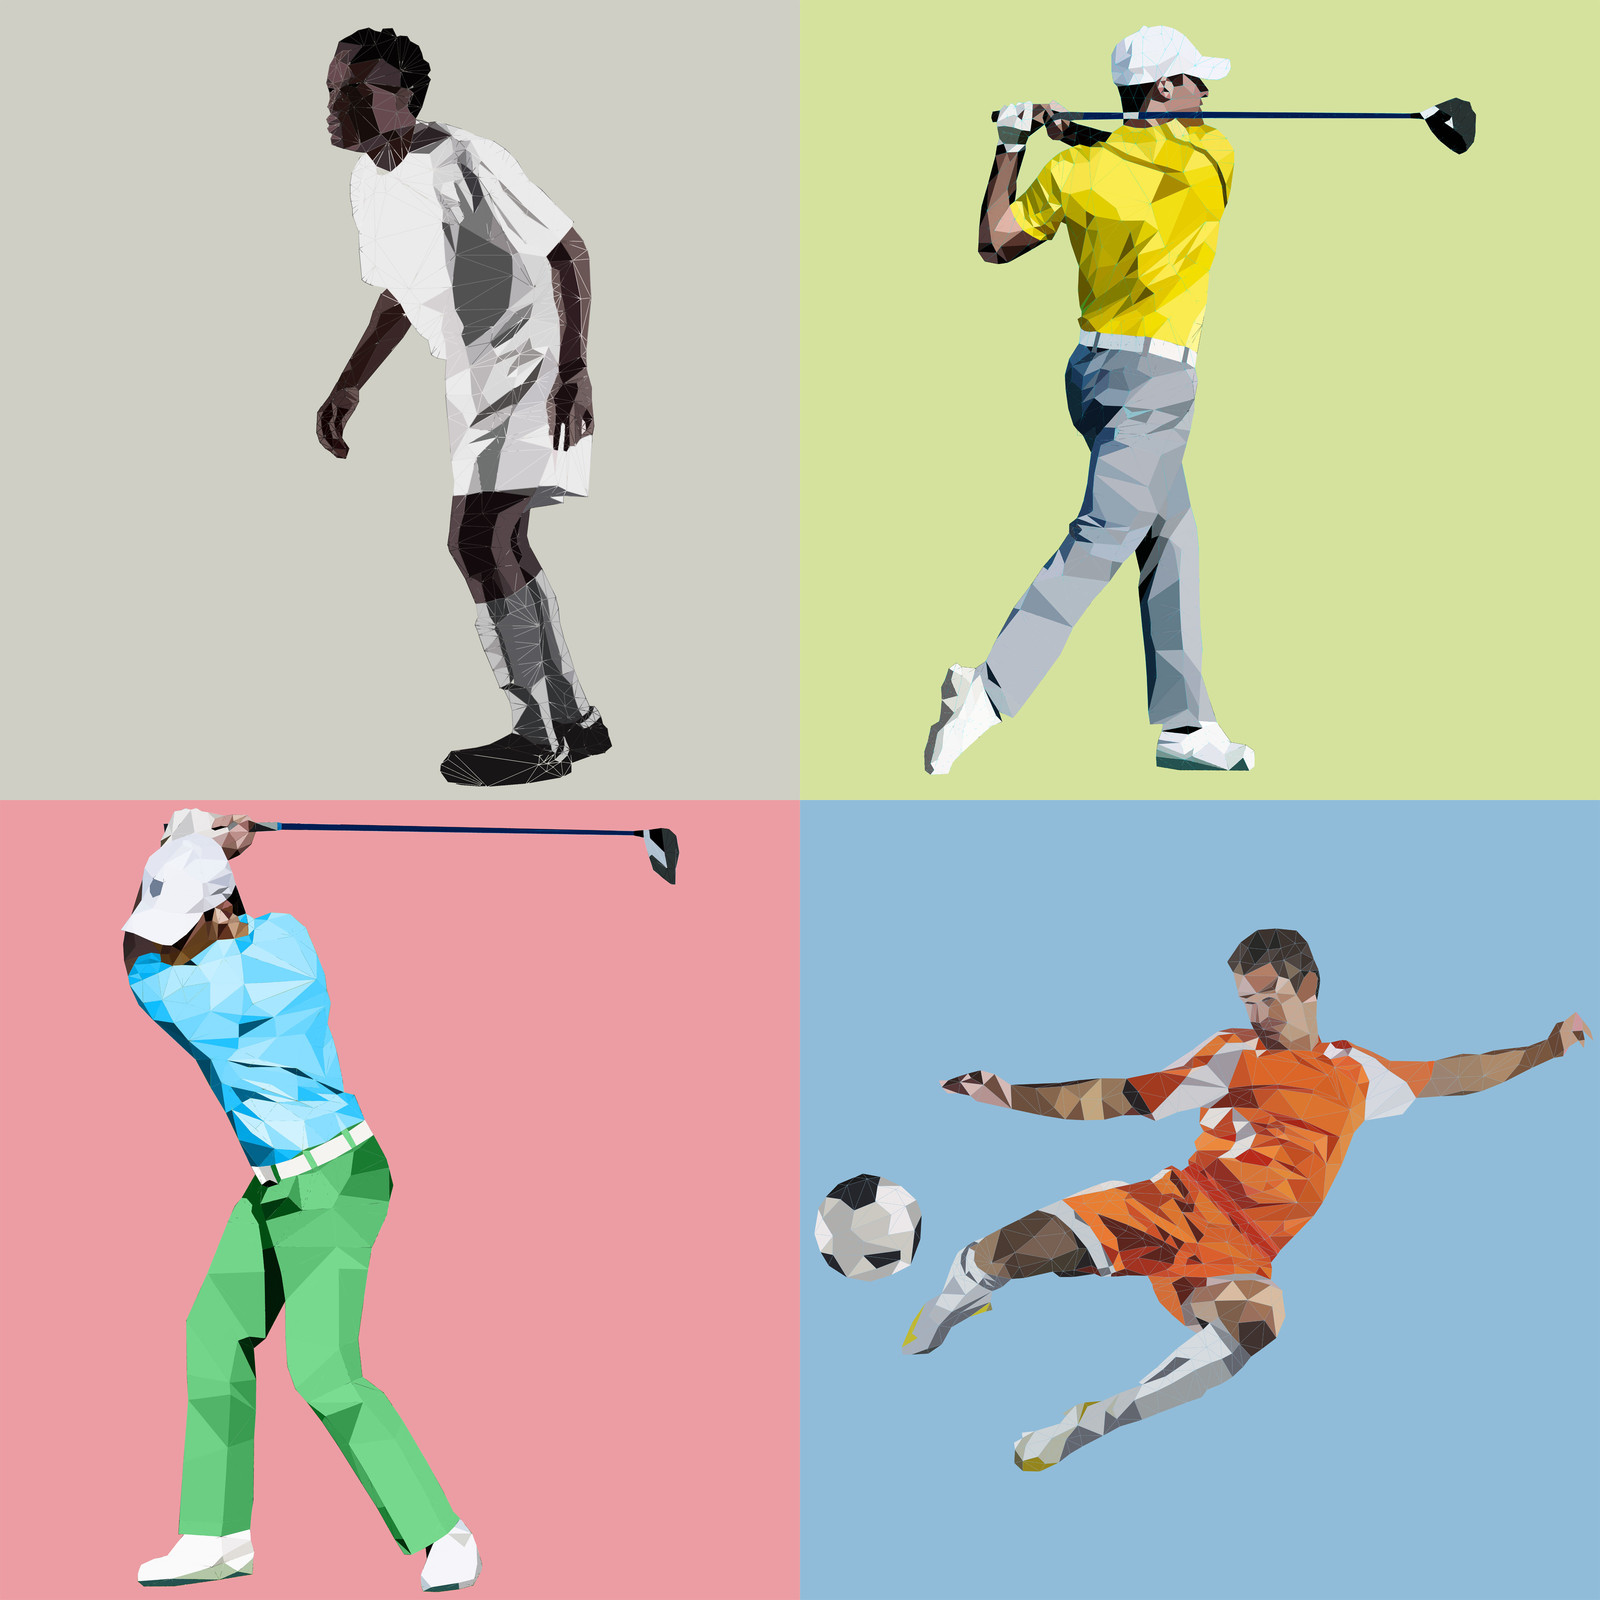 WIRED & Microsoft: Sport Innovation (illustrations)